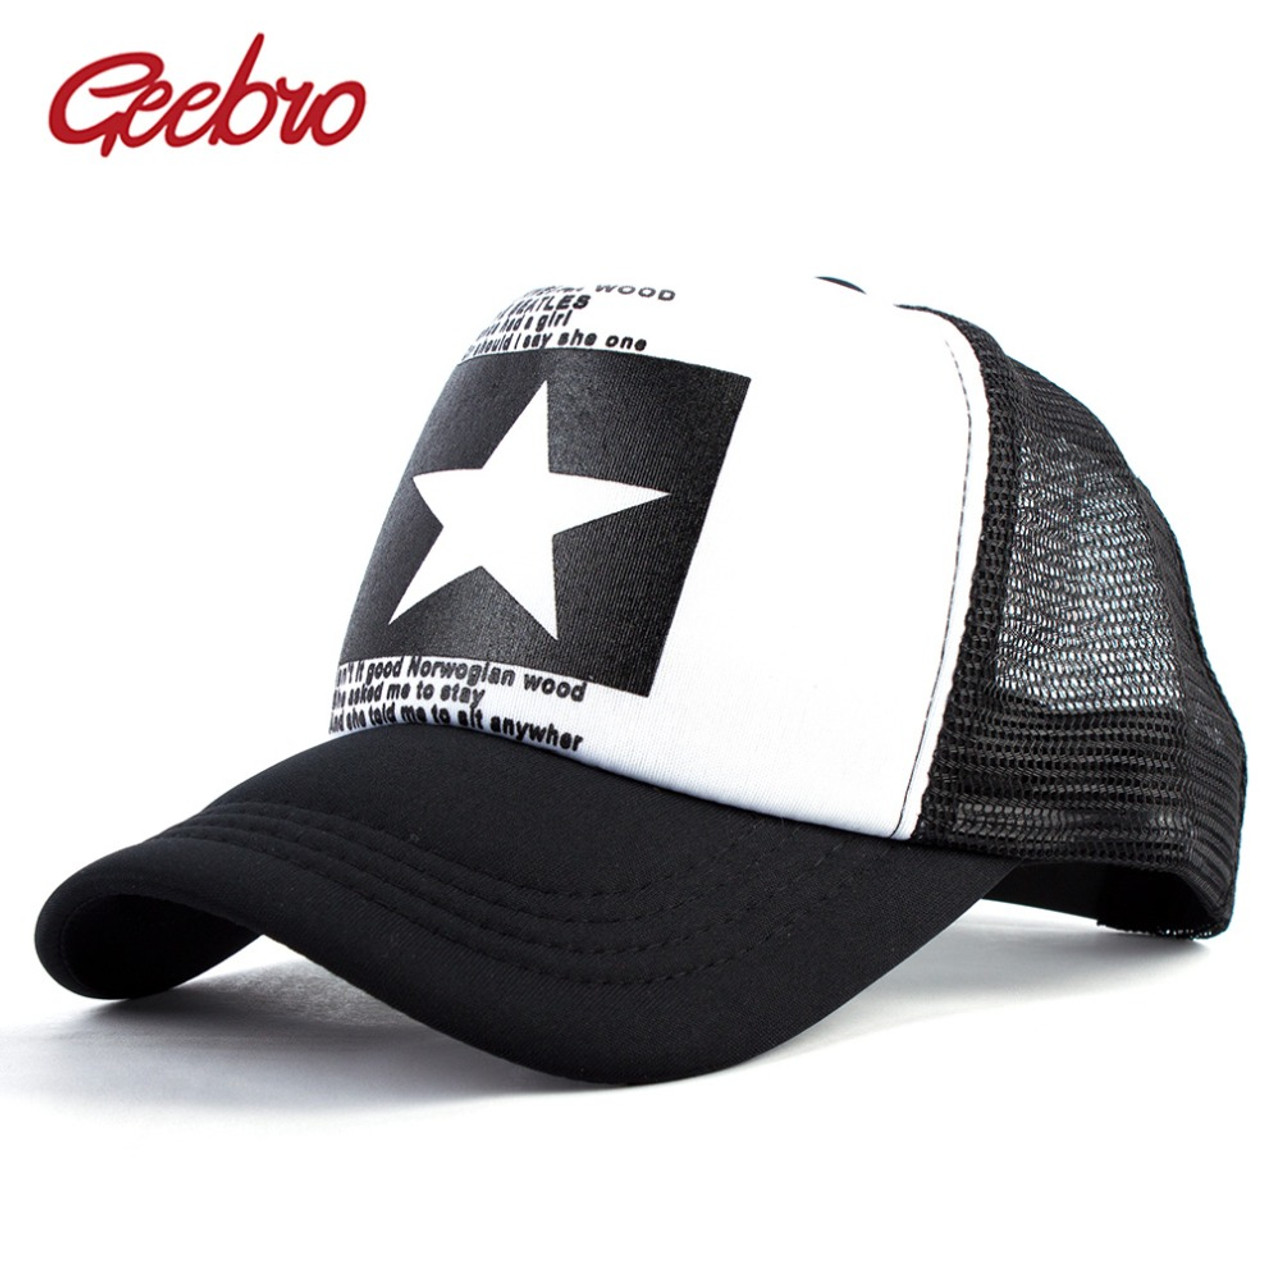 Geebro 2018 Summer Star Snapback Baseball Cap Men Sunshade Mesh Net Hat  Women Casual Advocate Sports ... 47fdf49c882